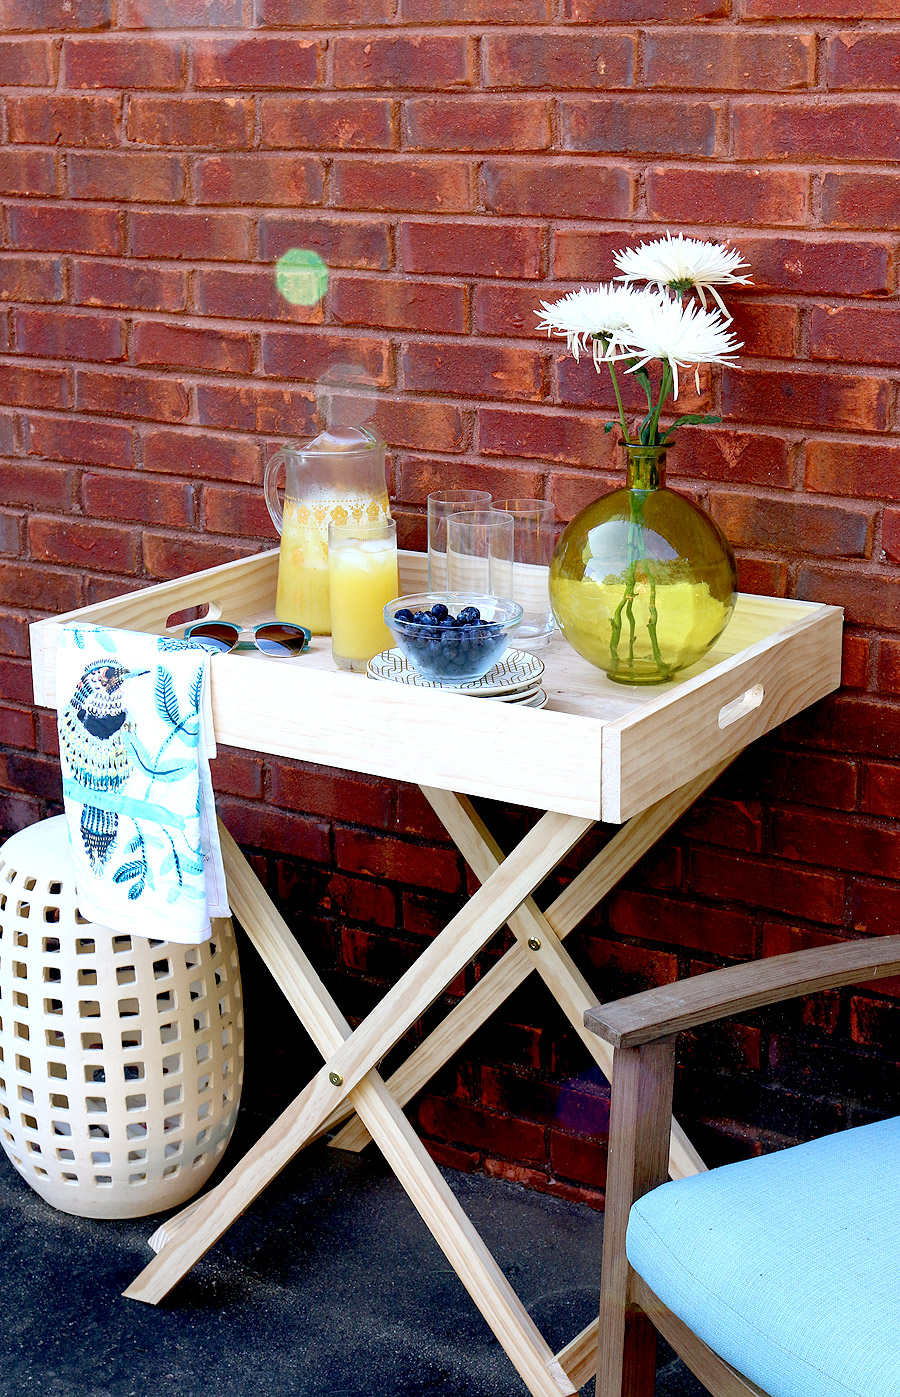 How to build a DIY West Elm Butler Stand